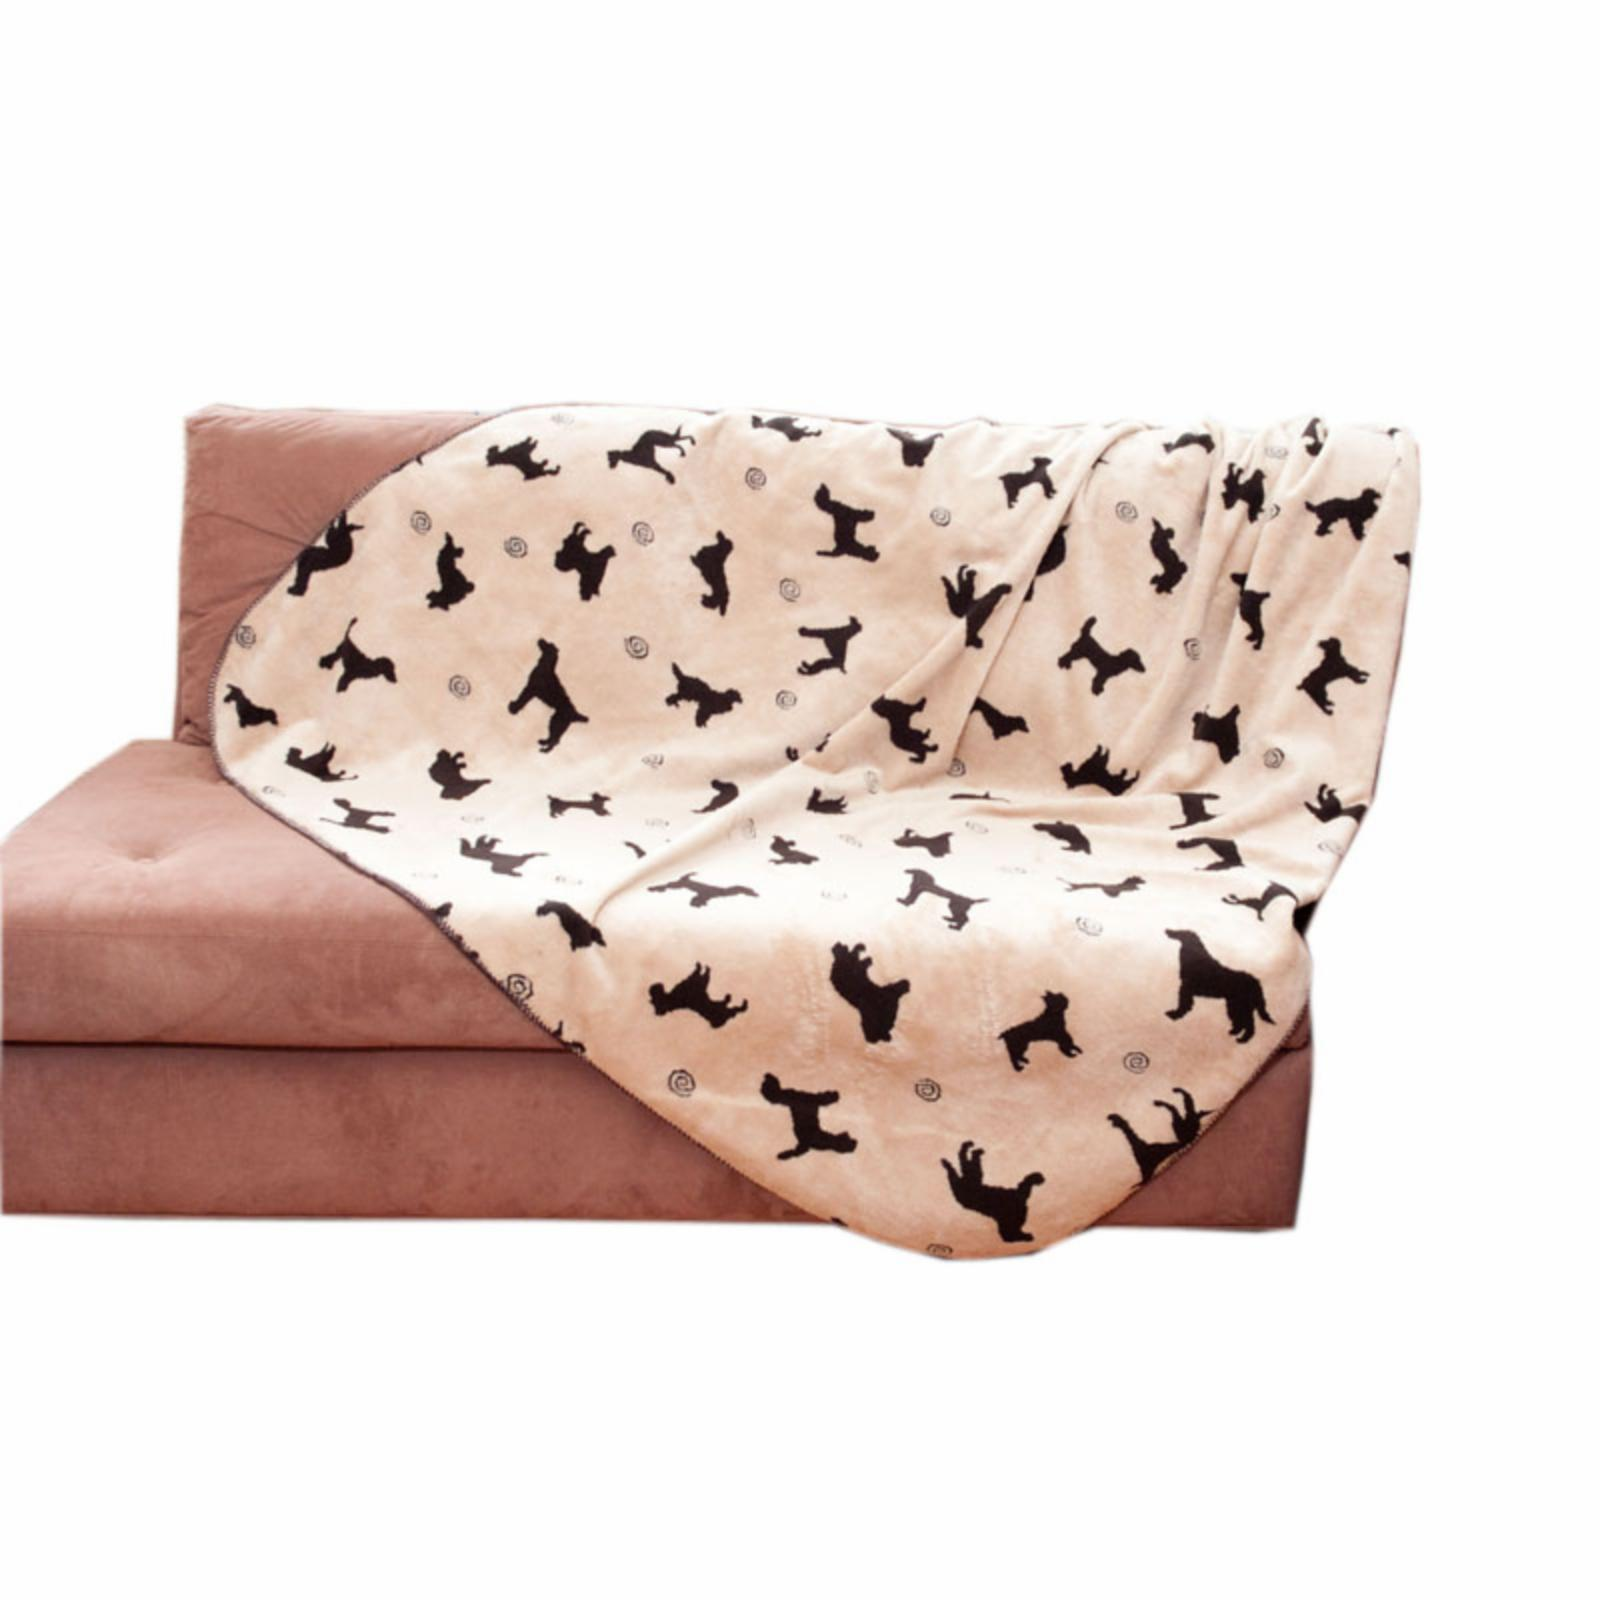 Carolina Company Small Plush Embossed Tossed Dog Throw - Beige, Multi